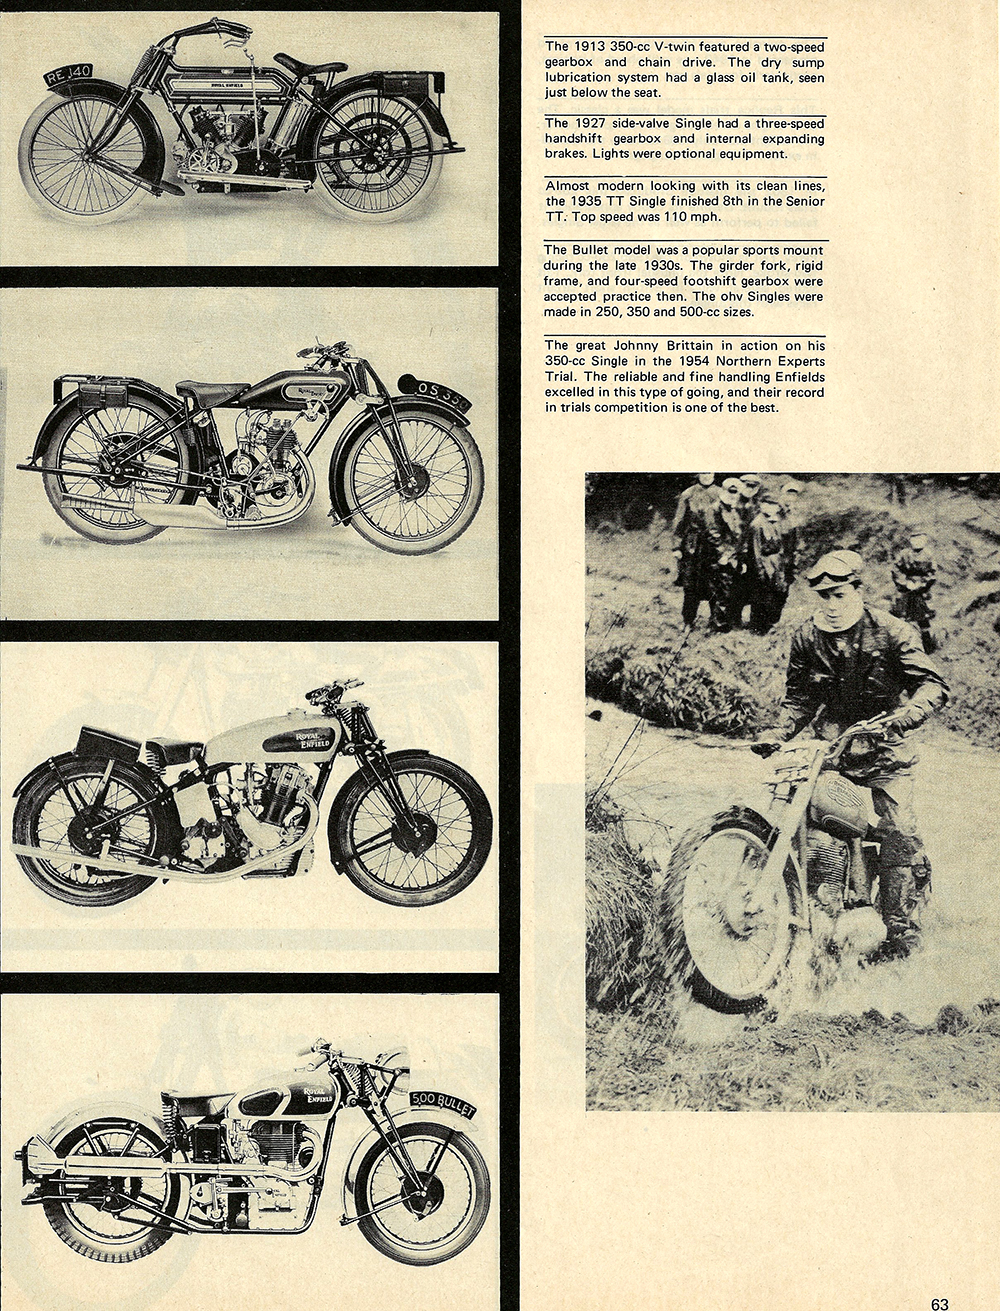 1970 History of Royal Enfield 02.jpg